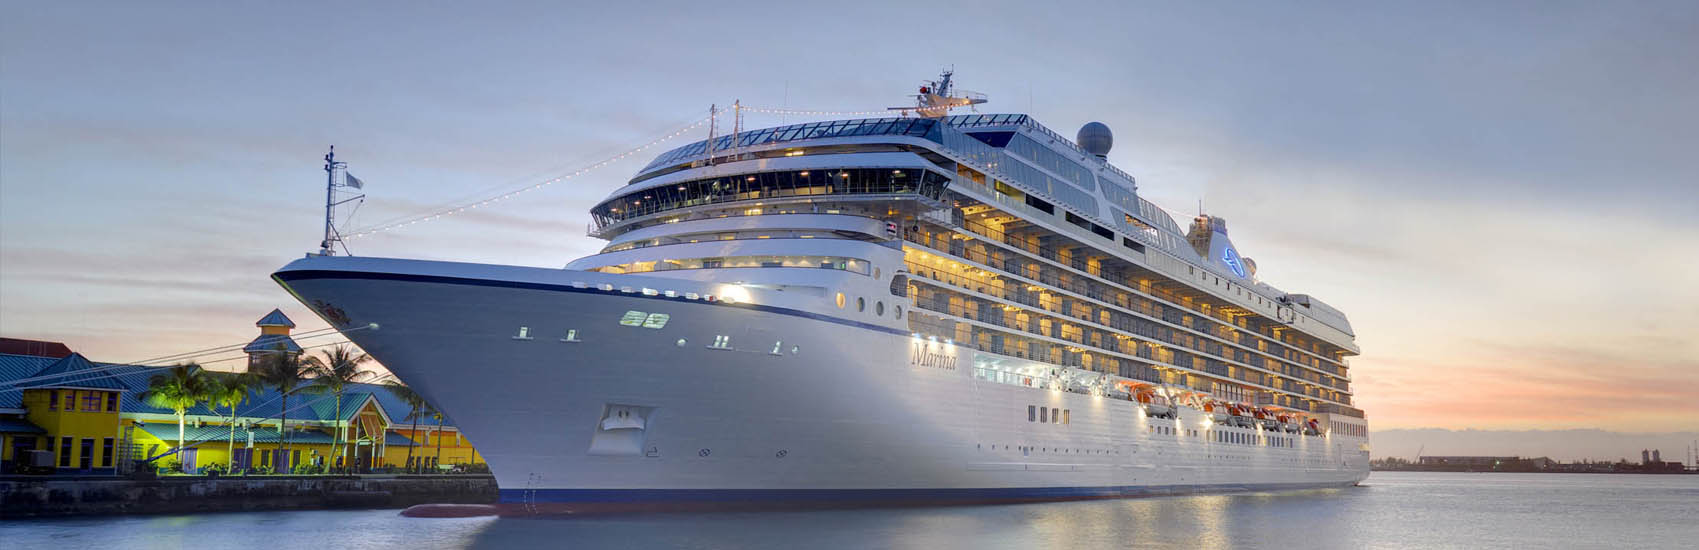 Canadian Resident 10% Savings on select Oceania Cruises voyages 3